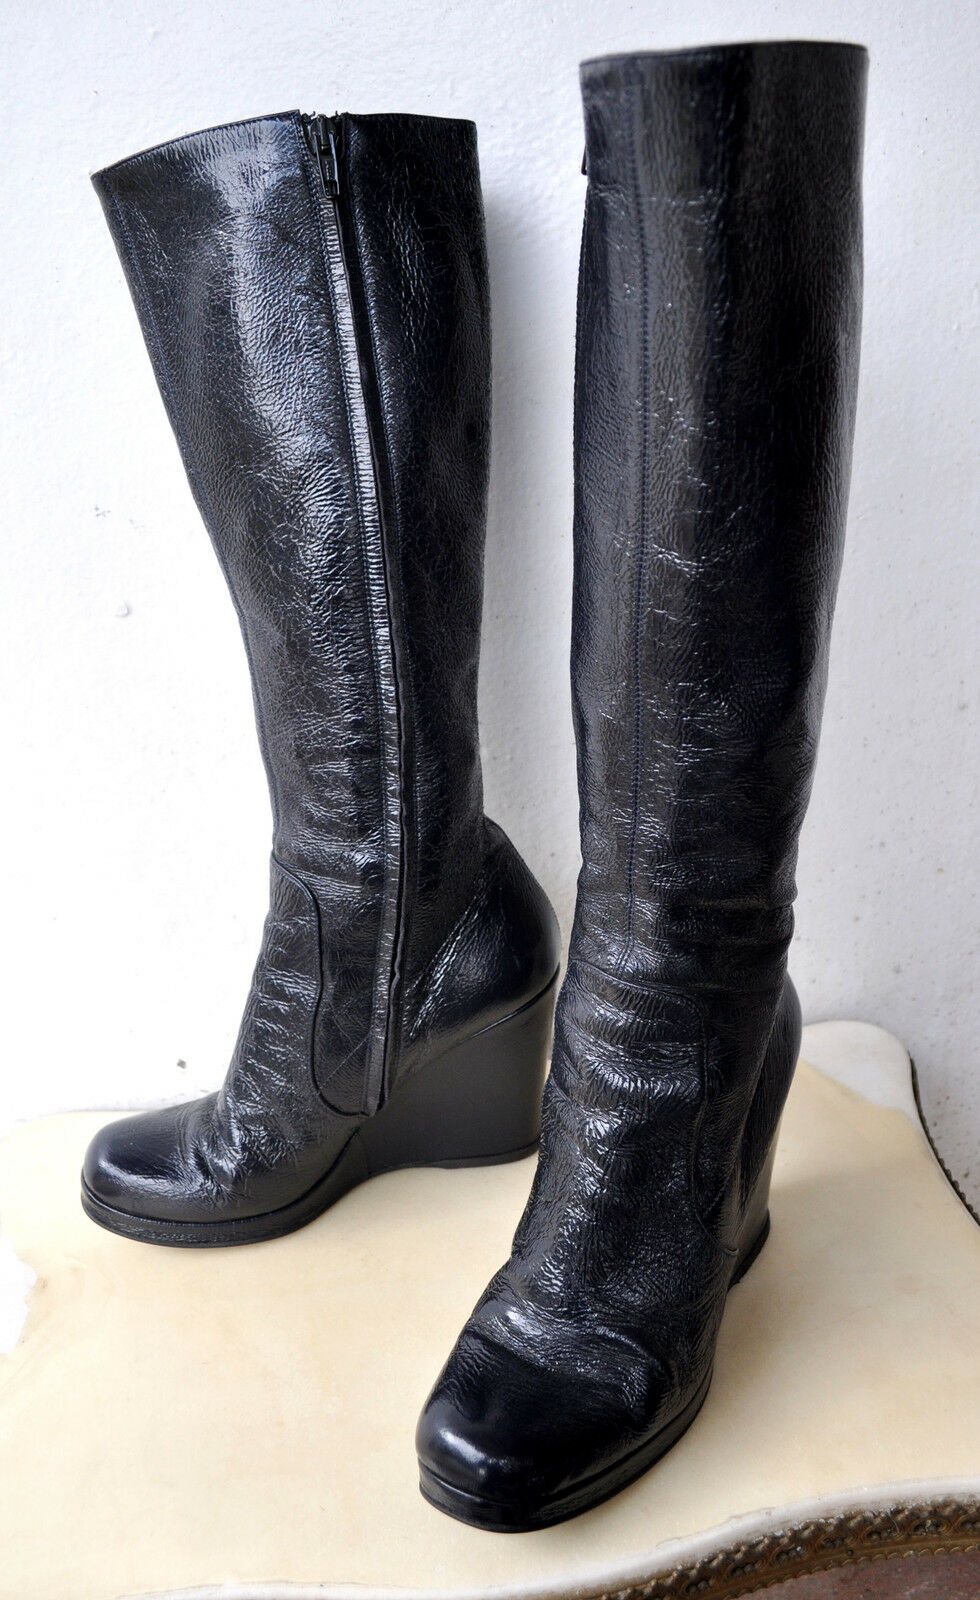 L'AUTRE CHOSE Patent Patent Patent Leather Knee High Wedge Stiefel Sz 39.5  SOLD OUT RARE 5d41db